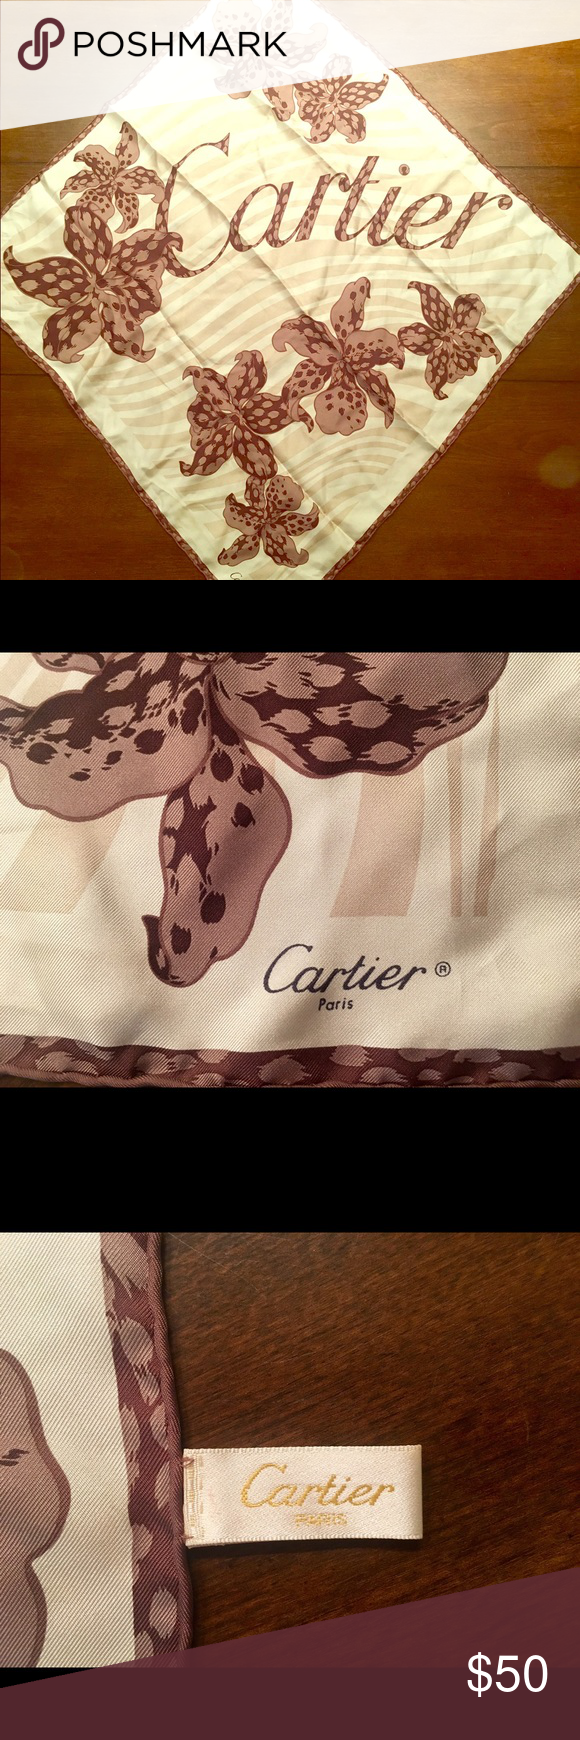 Cartier authentic silk scarf Cartier panther orchid scarf 25x25 inches Cartier Other